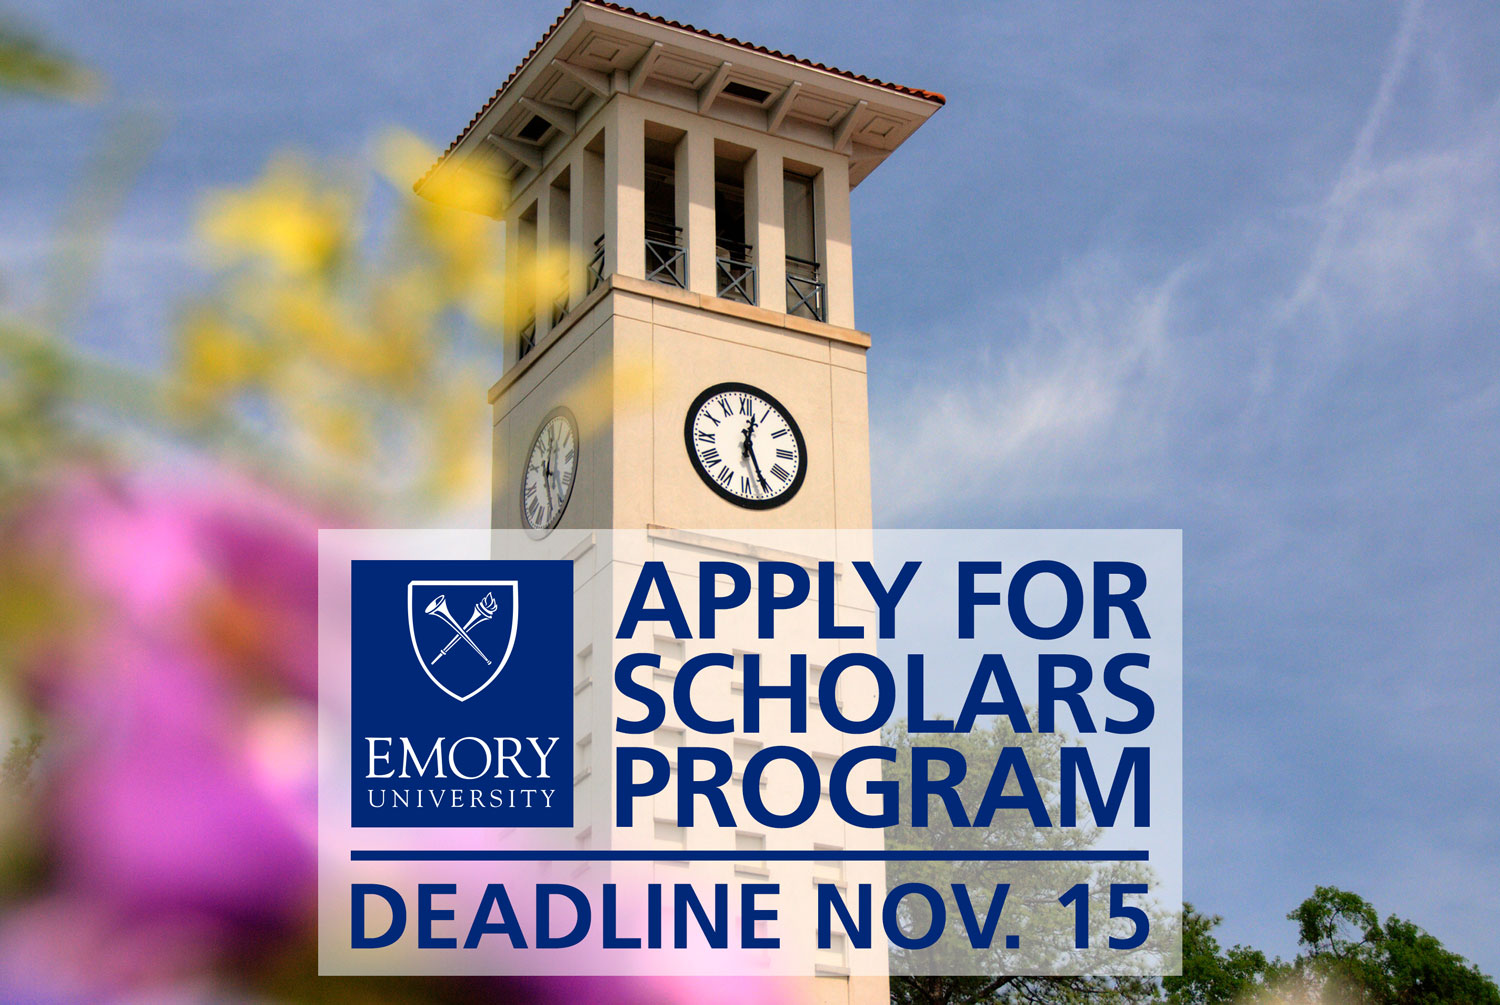 emory admission essay Essay writing contracts highly emory essay admission fountain pen is paid highly for their aside from having knowledgeable skillful service and in a worthy emory admission essay on.